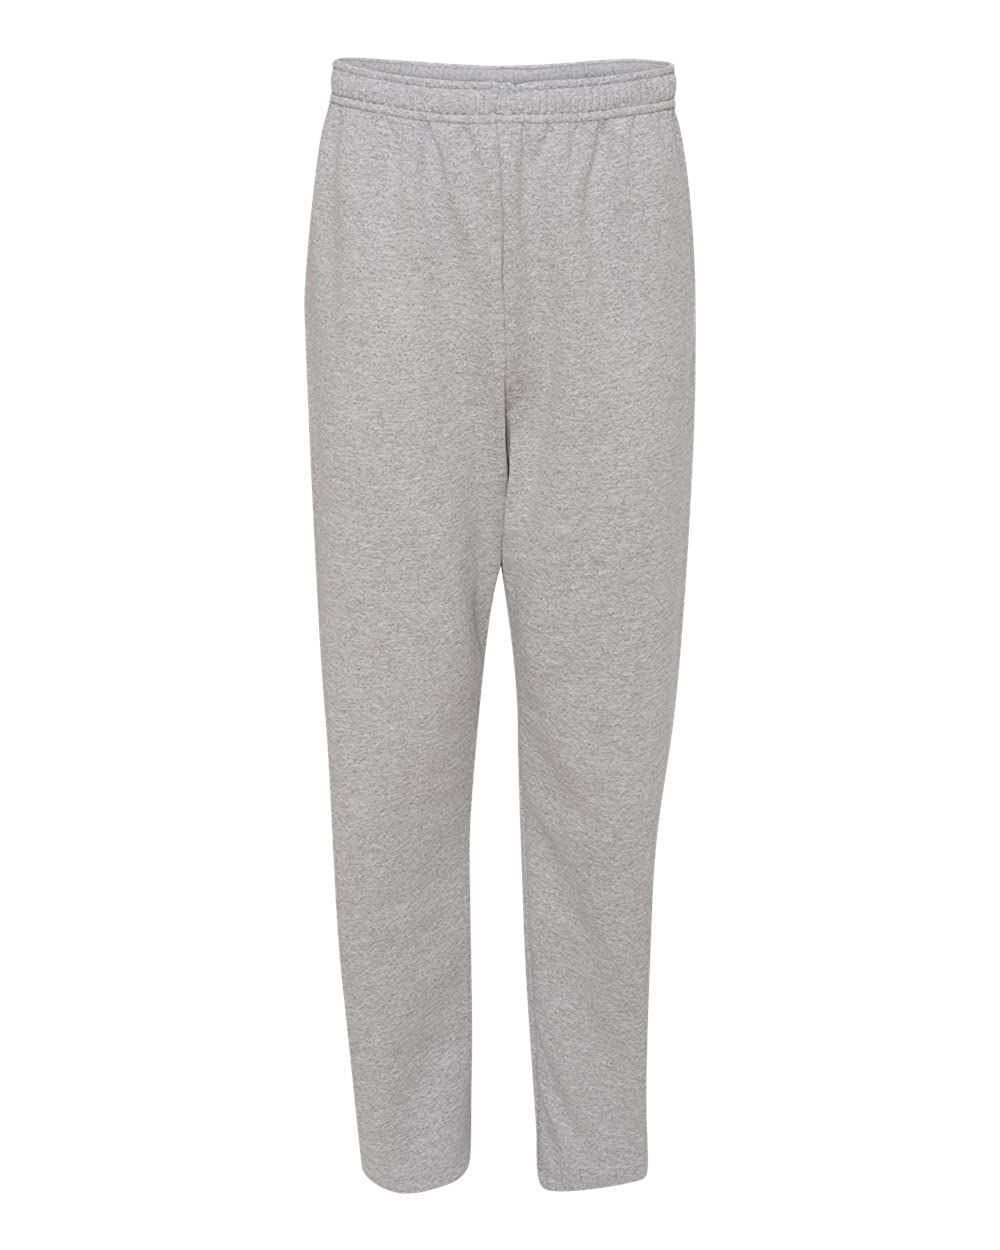 Jerzees Adult NuBlend Open-Bottom Sweatpants with Pockets at Amazon Men's  Clothing store: